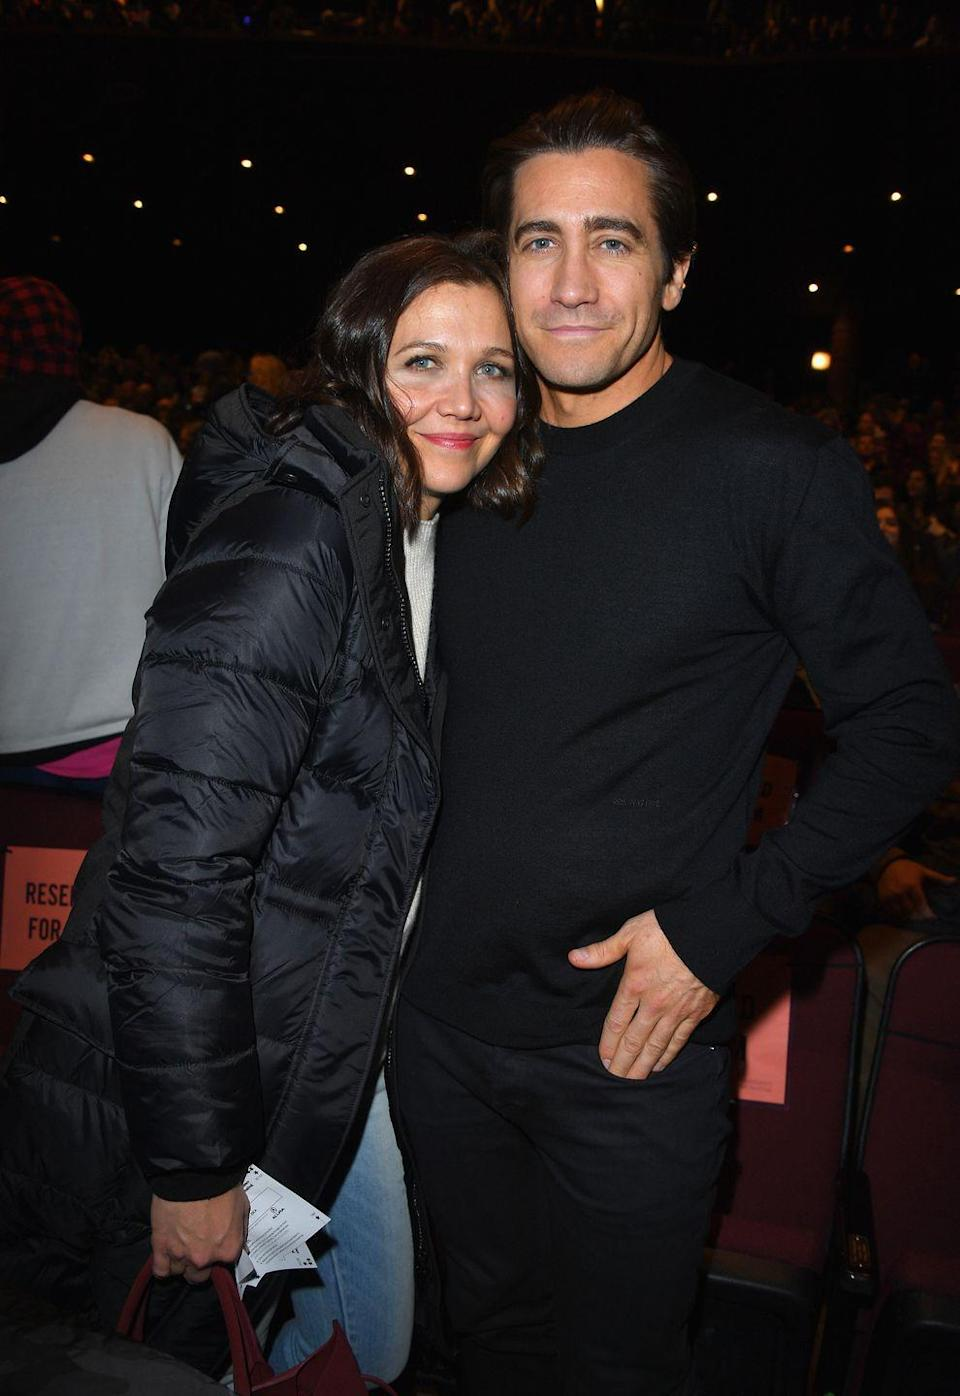 <p>Maggie and Jake Gyllenhaal are one of Hollywood's most well-known siblings, largely due to their matching deep set blue eyes and dark brunette hair. Both are famous actors in their own right and frequently escort each other on the red carpet. </p>